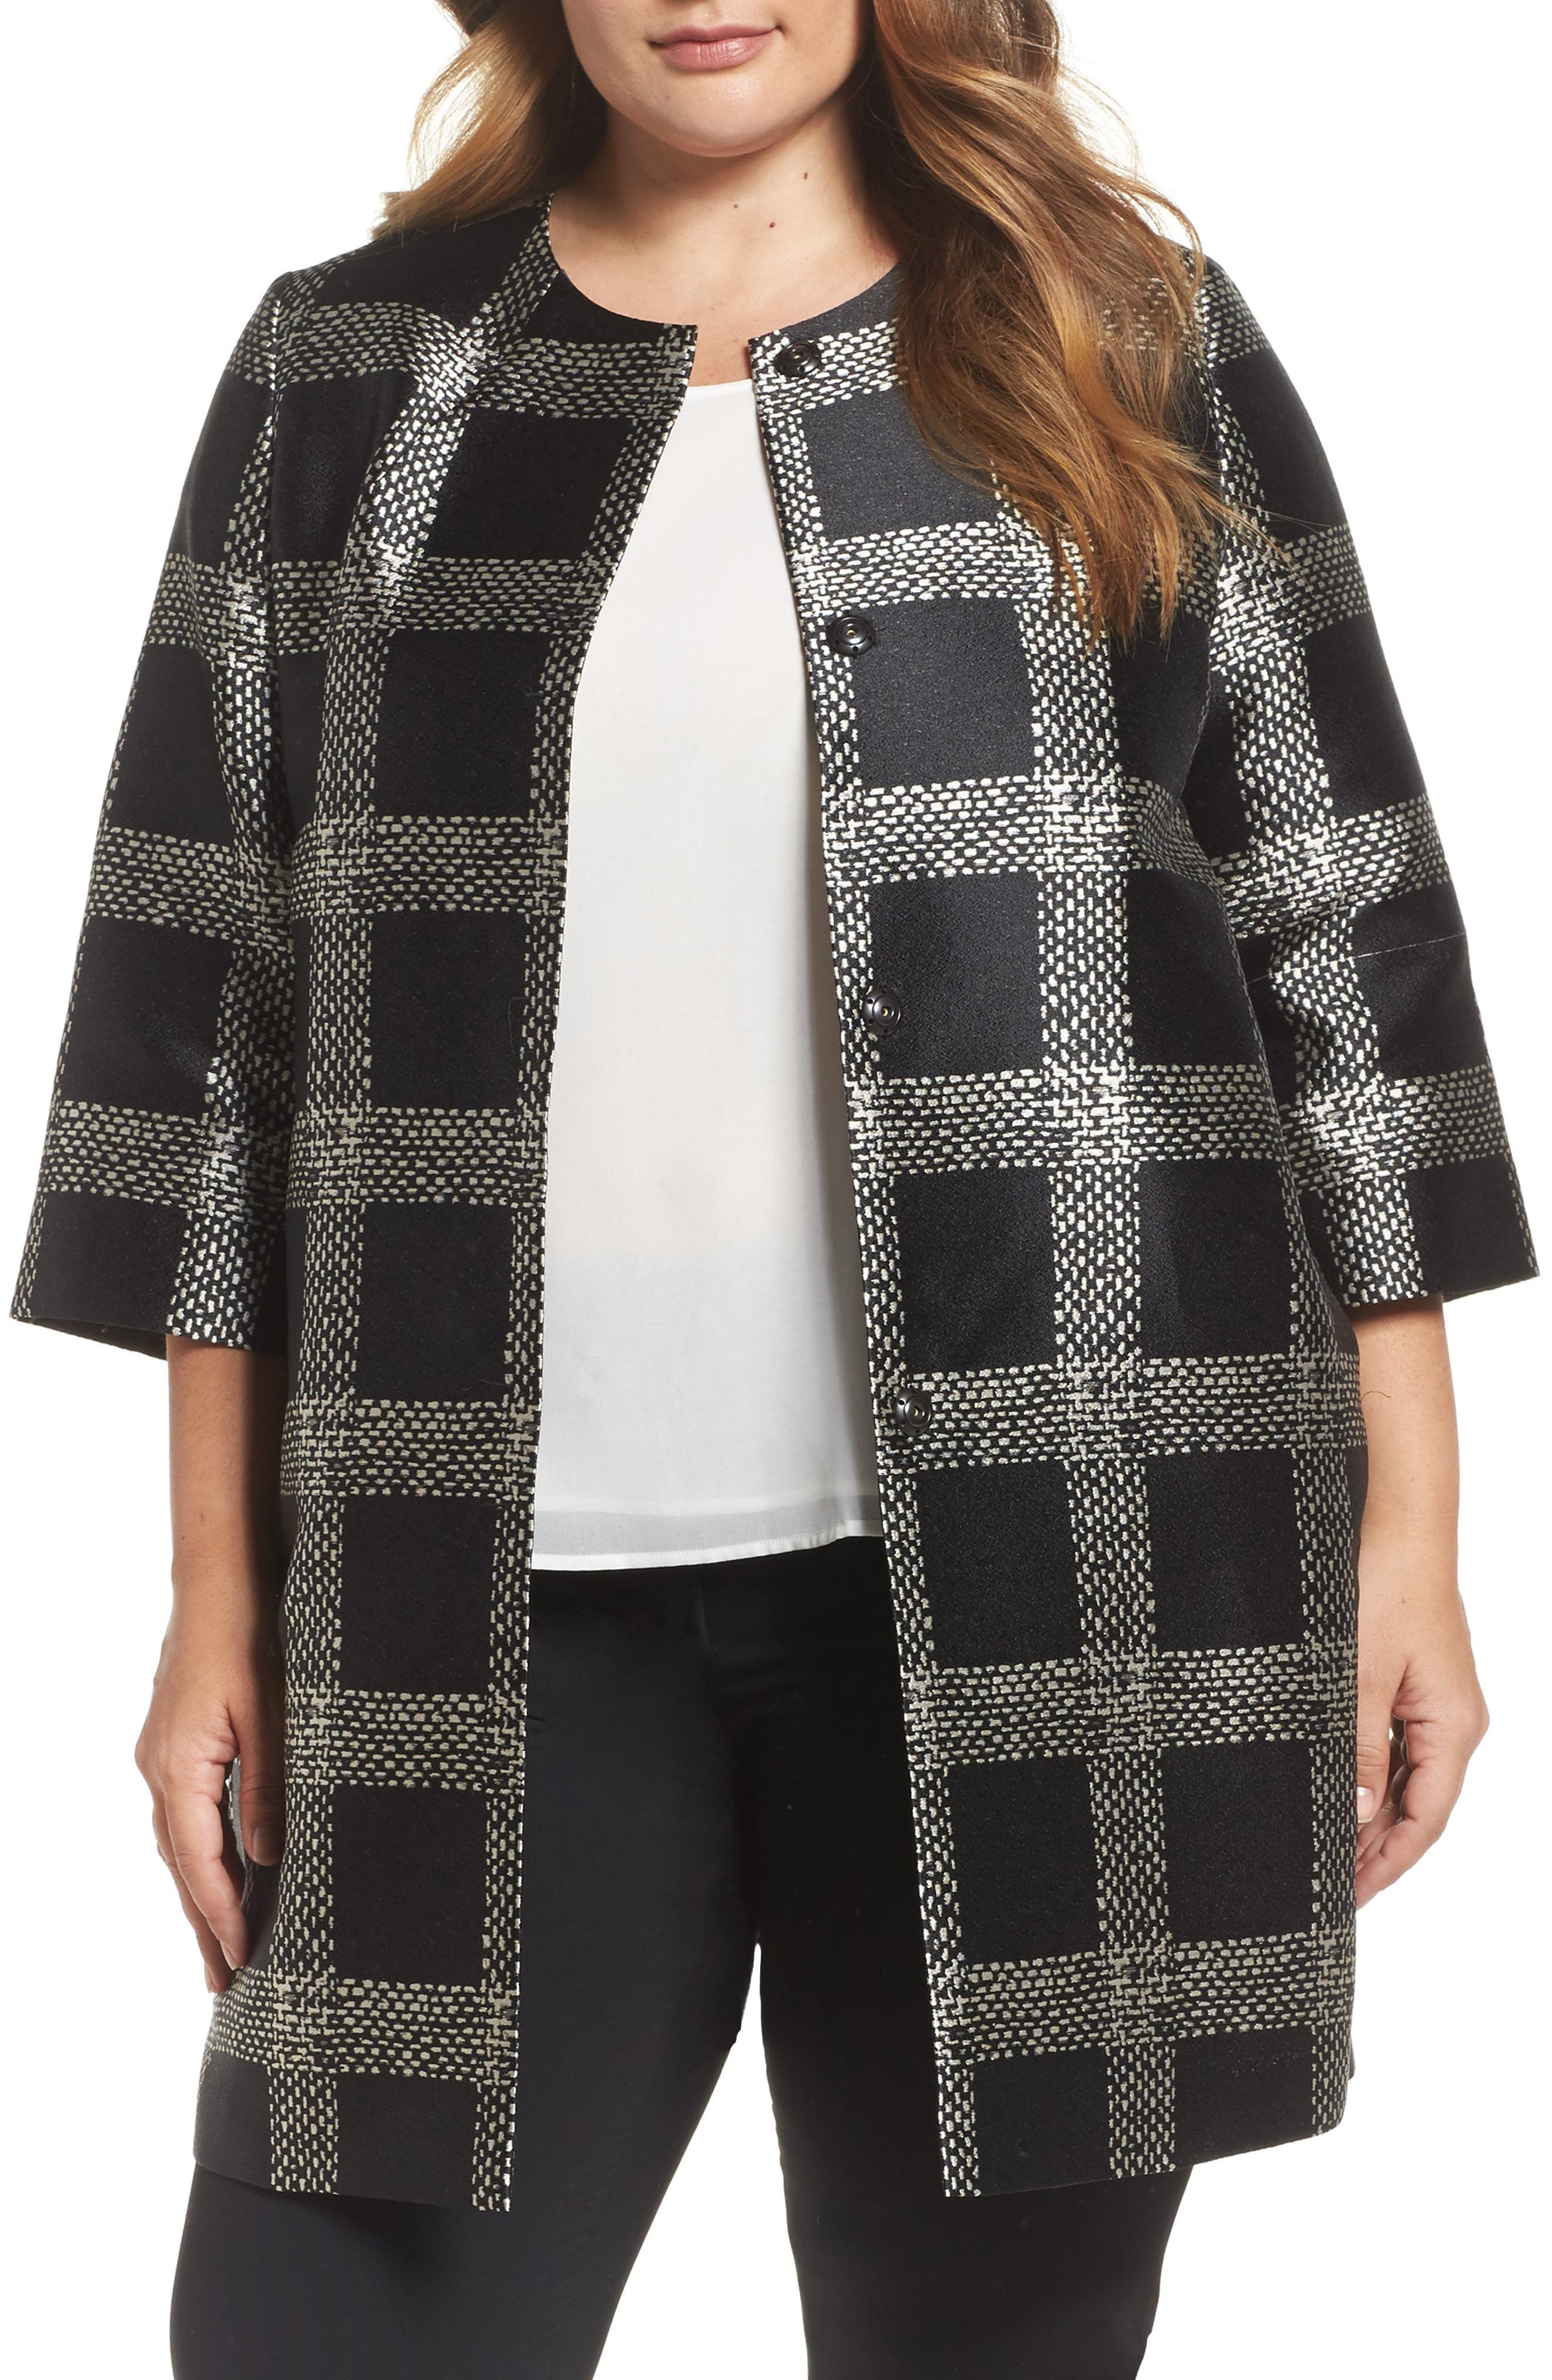 Alternate Image 1 Selected - Persona by Marina Rinaldi Noa Plaid Topper (Plus Size)